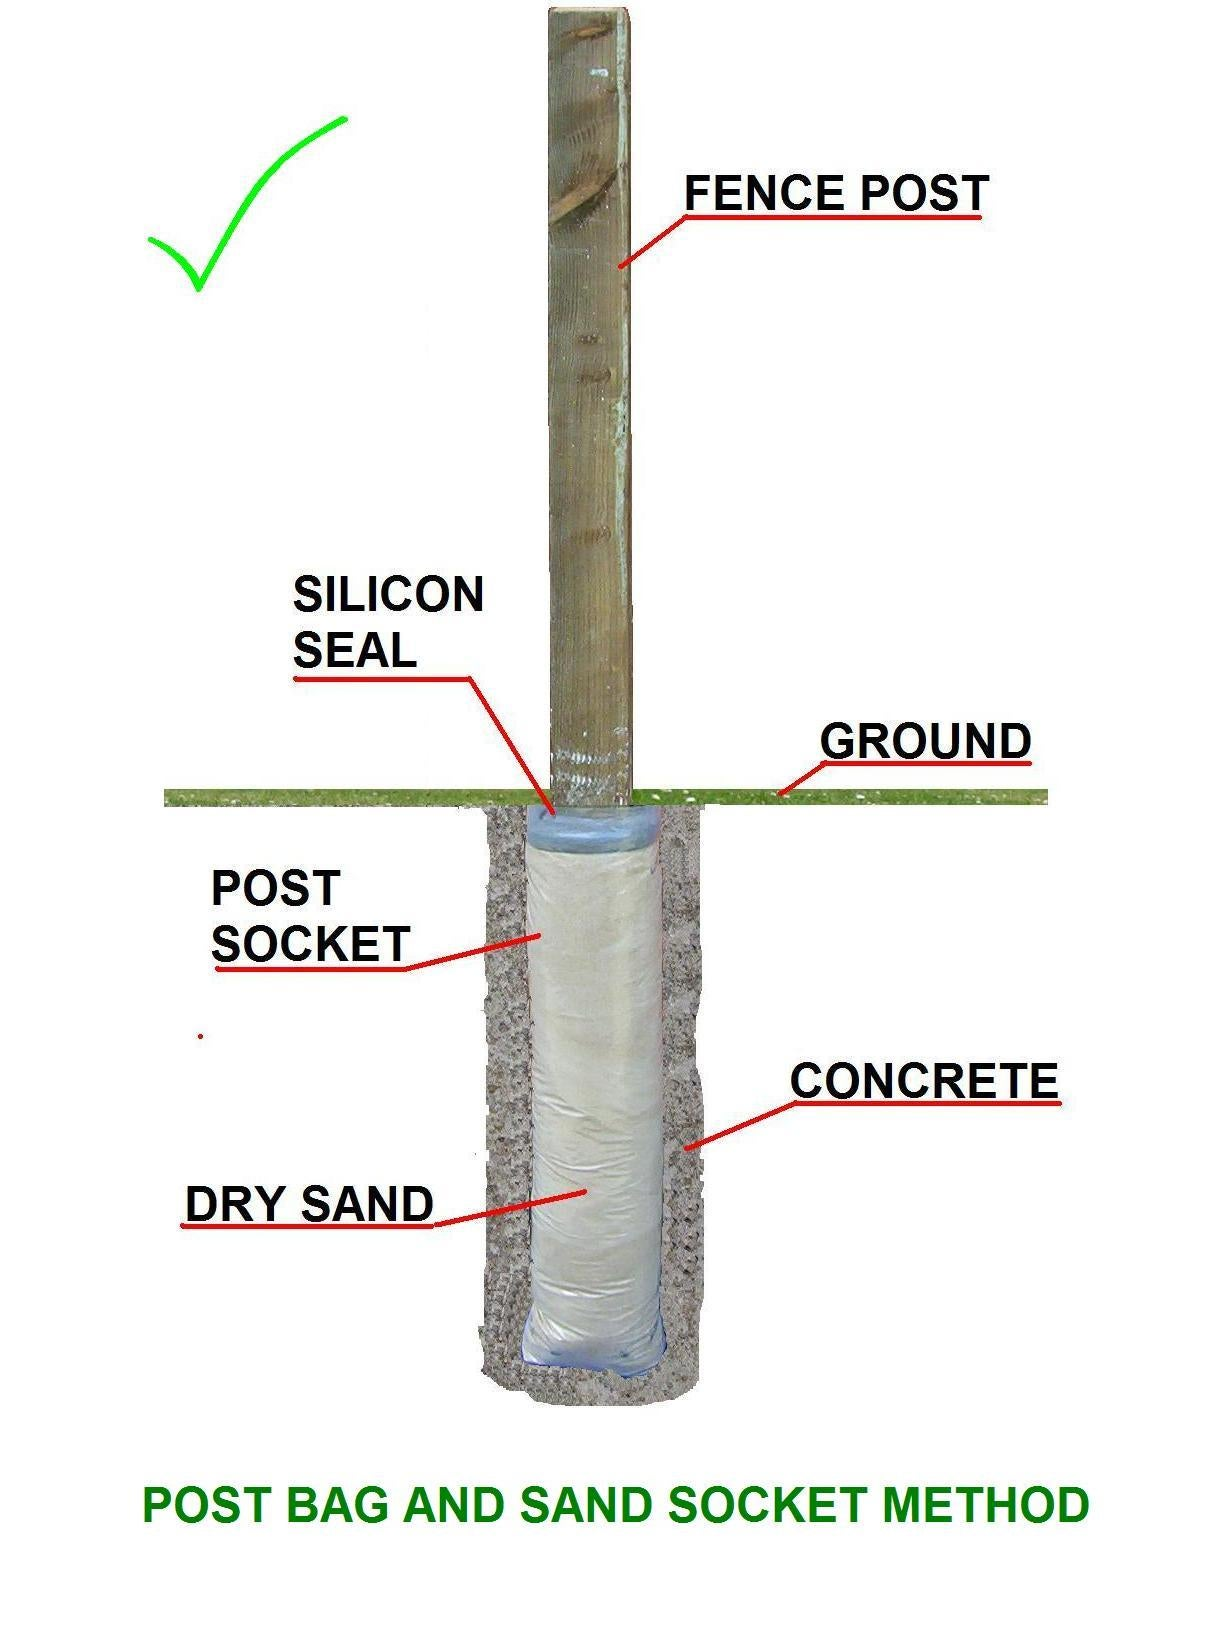 How To Fix And Then Extract A Fence Post With Ease 12 Steps